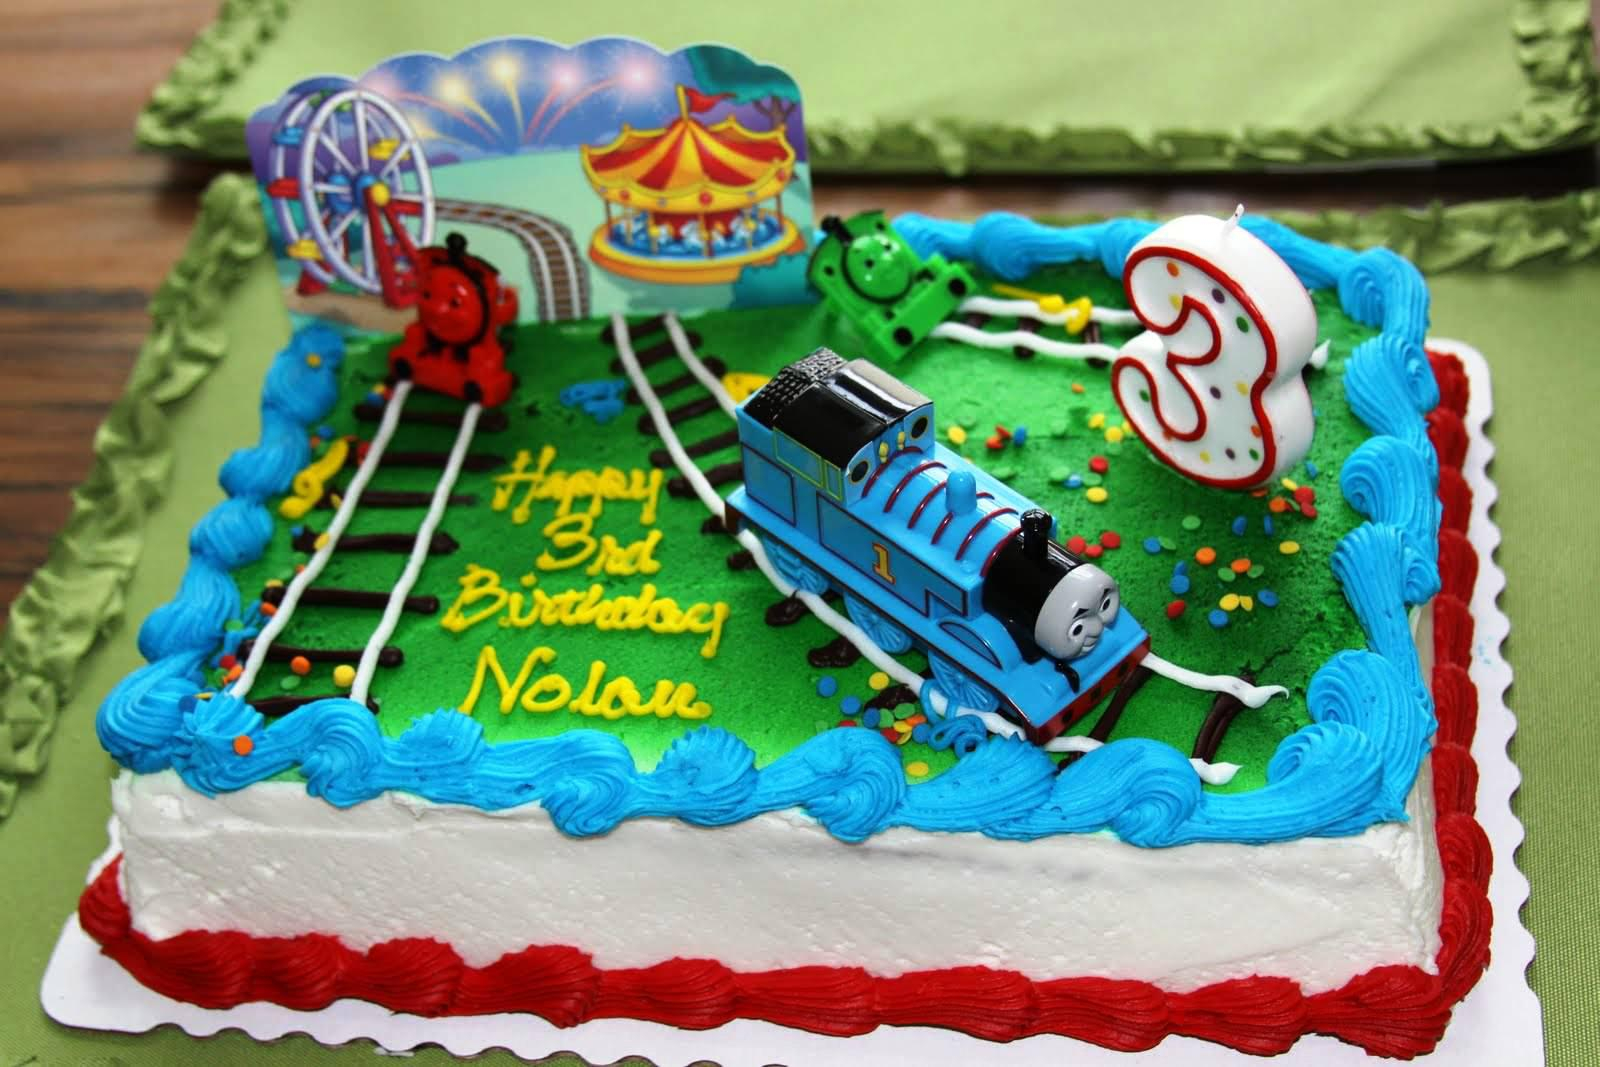 Fabulous Thomas The Train Birthday Cake Thomas The Train Birthday Cake Funny Birthday Cards Online Fluifree Goldxyz